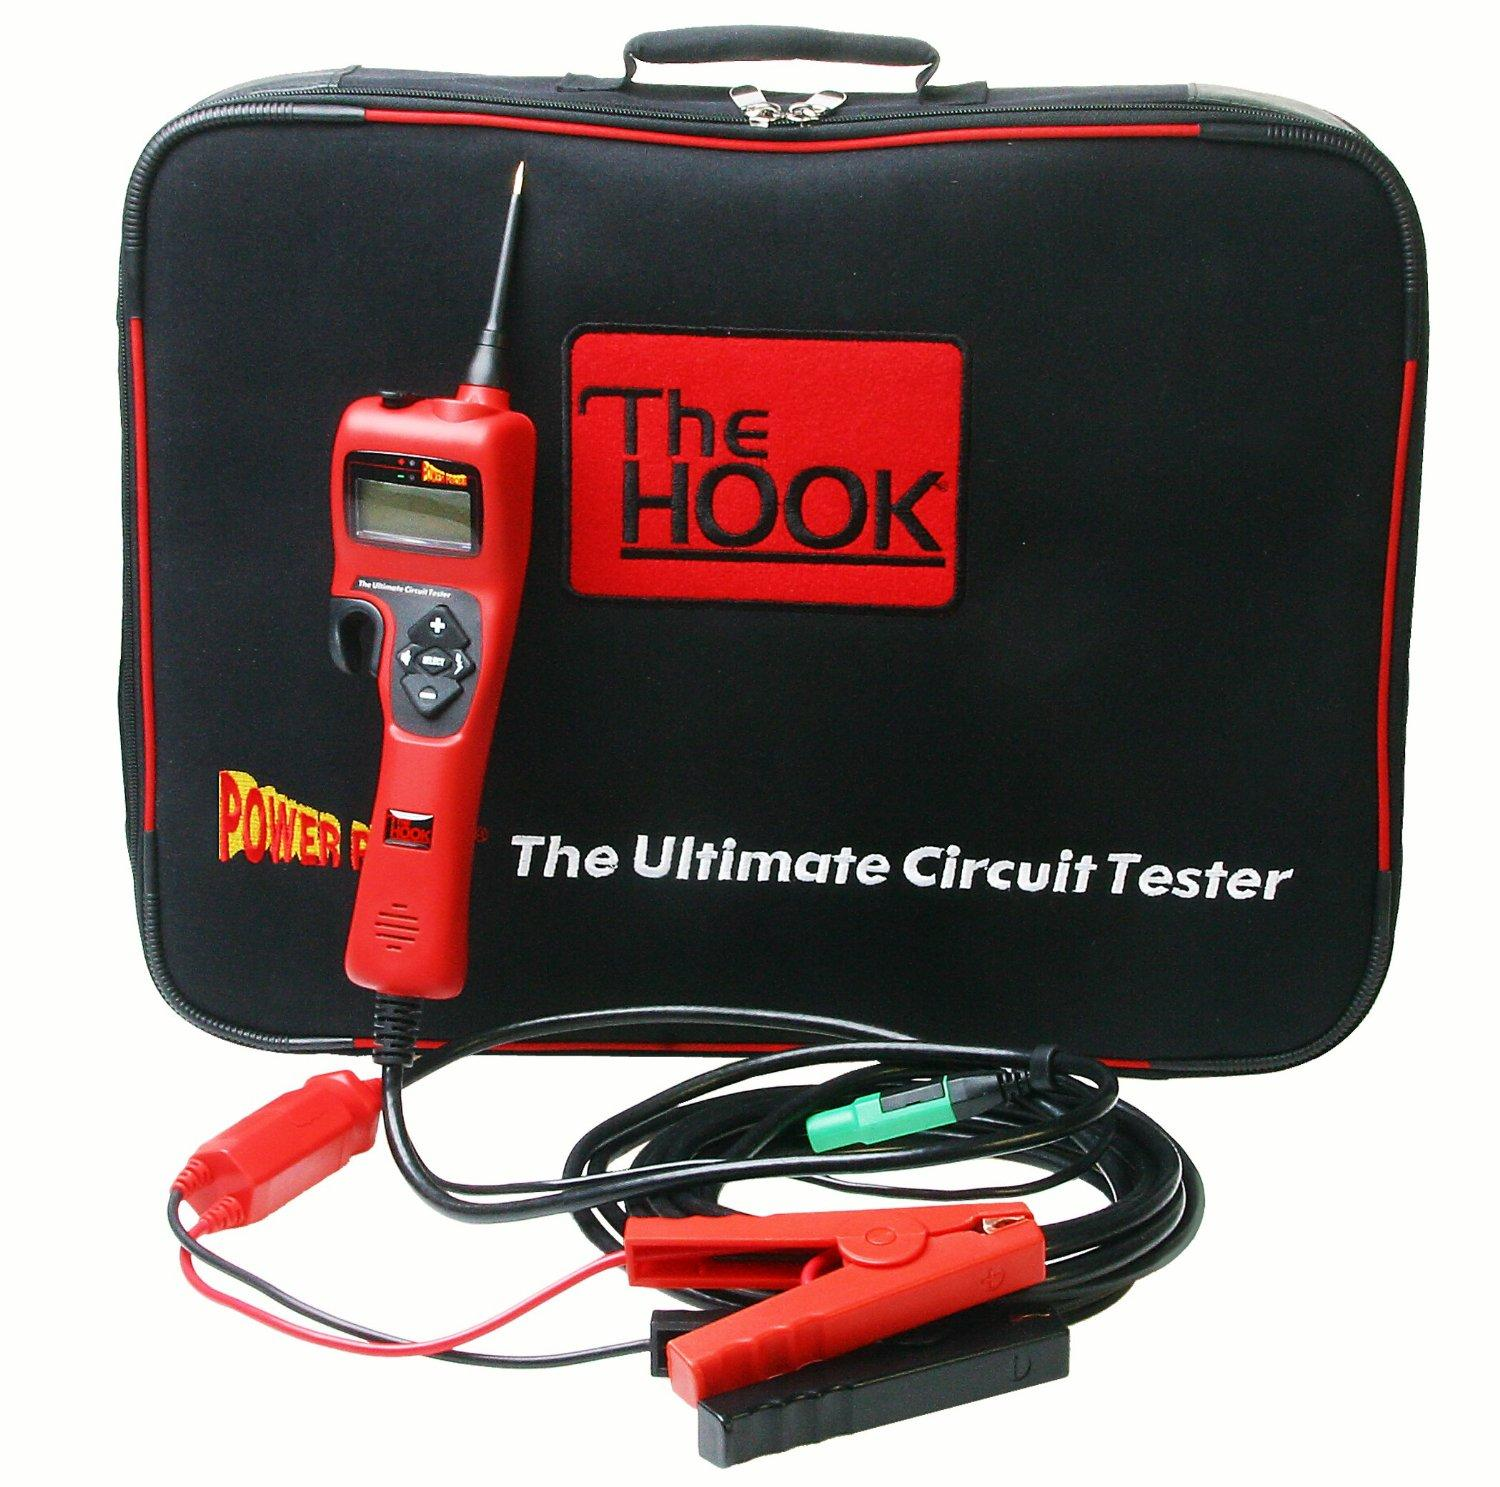 All In One Electrical Testers : Amazon power probe pph the hook ultimate circuit